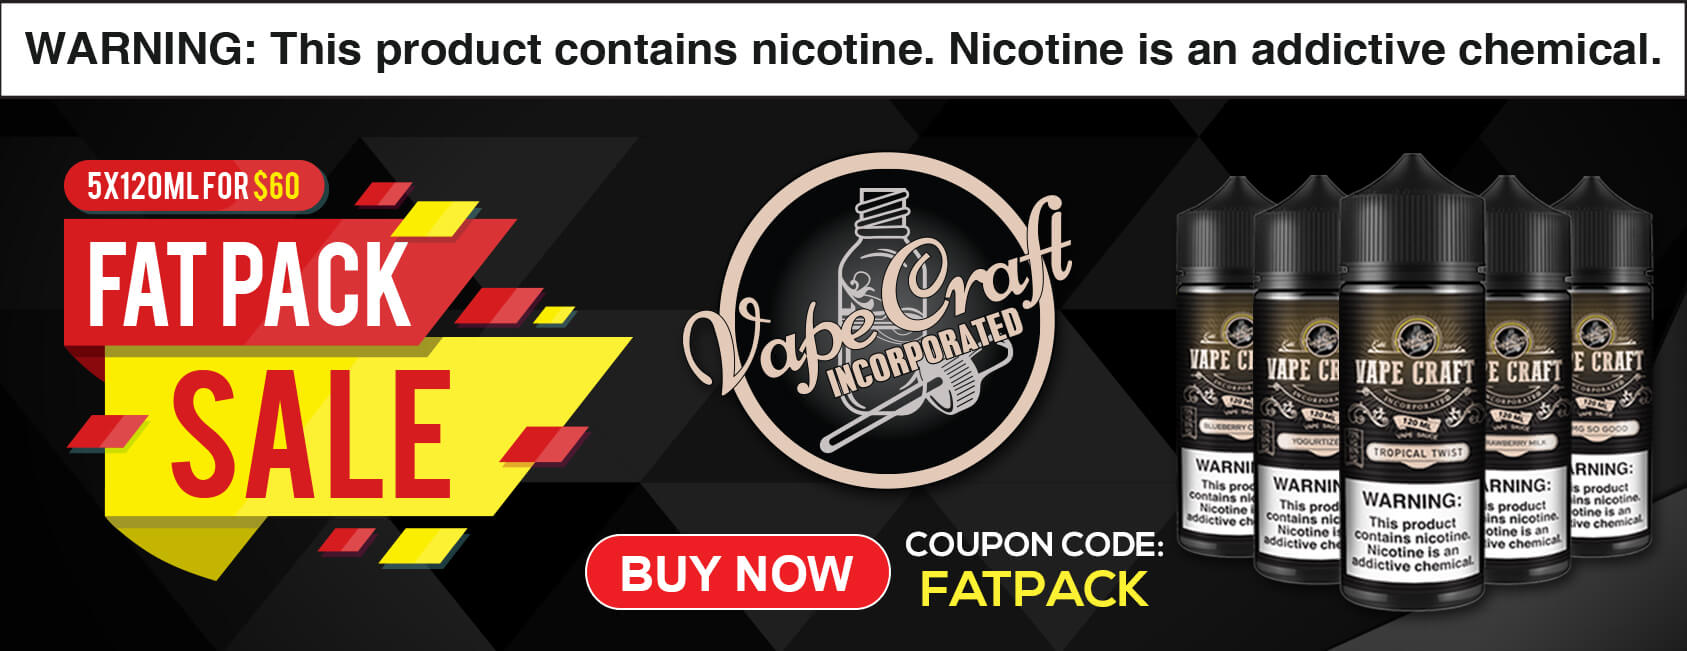 VCI_Fat Pack_Banner_1687x651.jpg